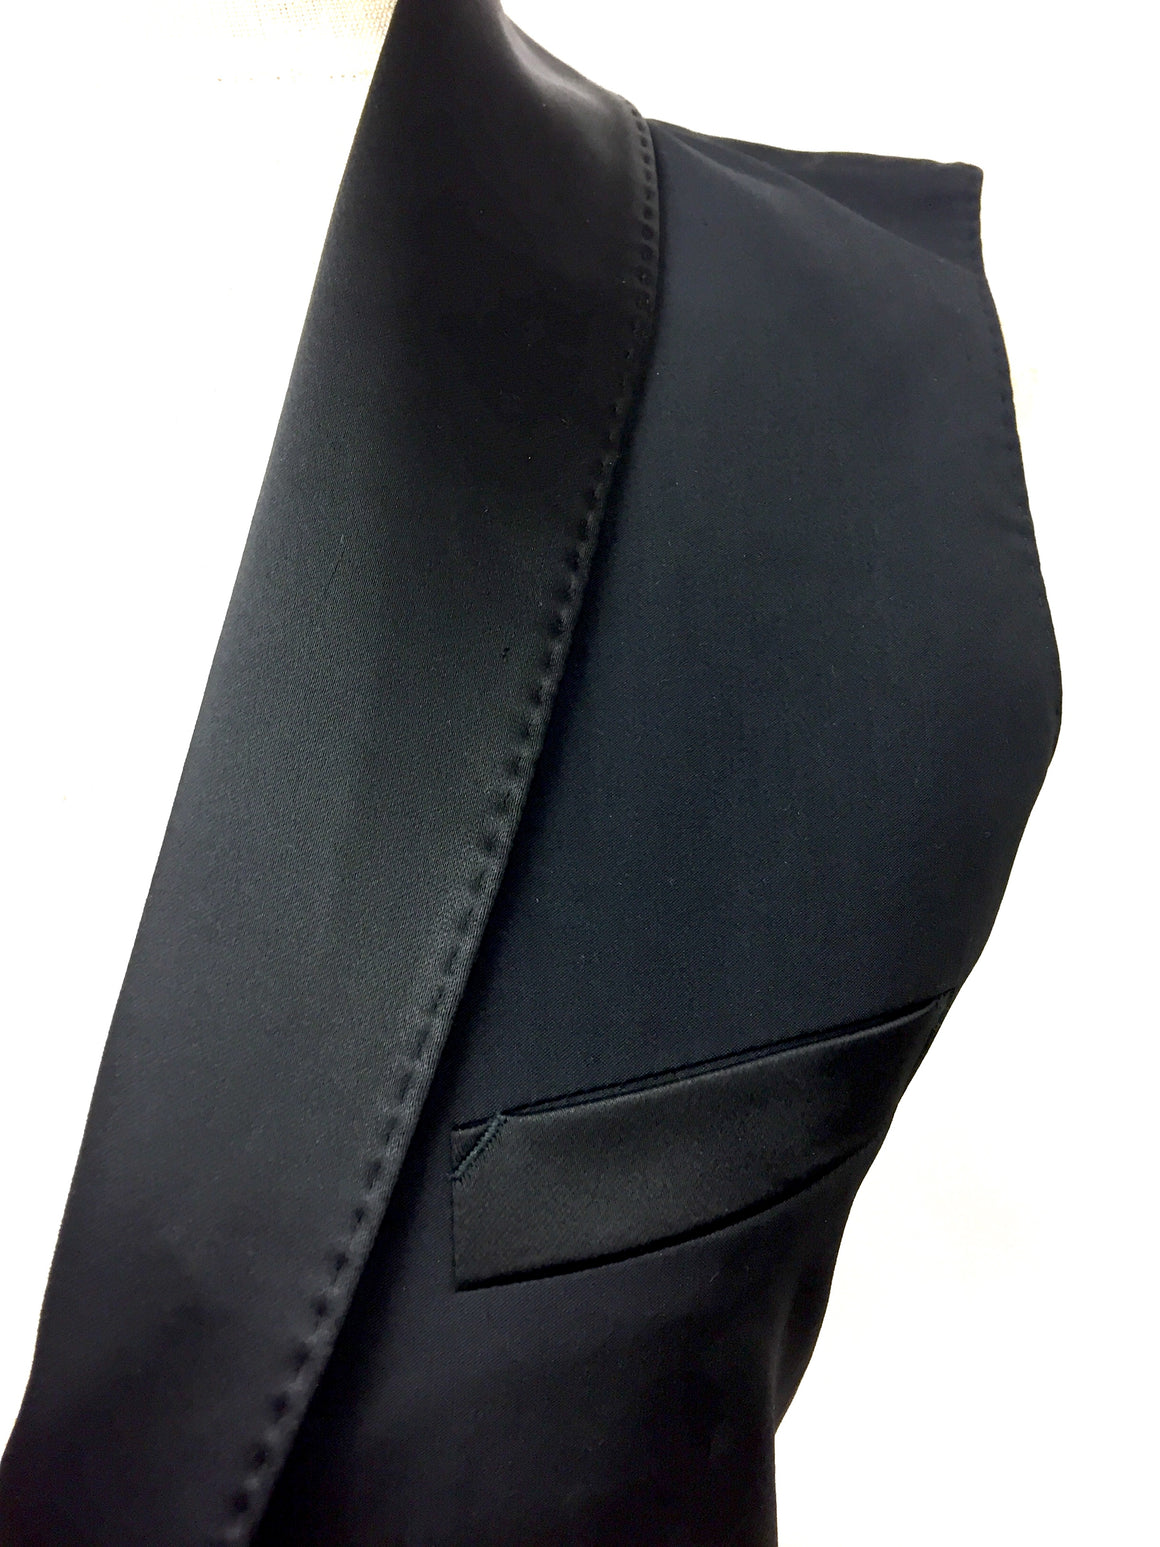 JEAN PAUL GAULTIER - Femme New with Tags Black Wool Sleeveless Tuxedo Jacket / Vest  Size: IT 42 / US 6